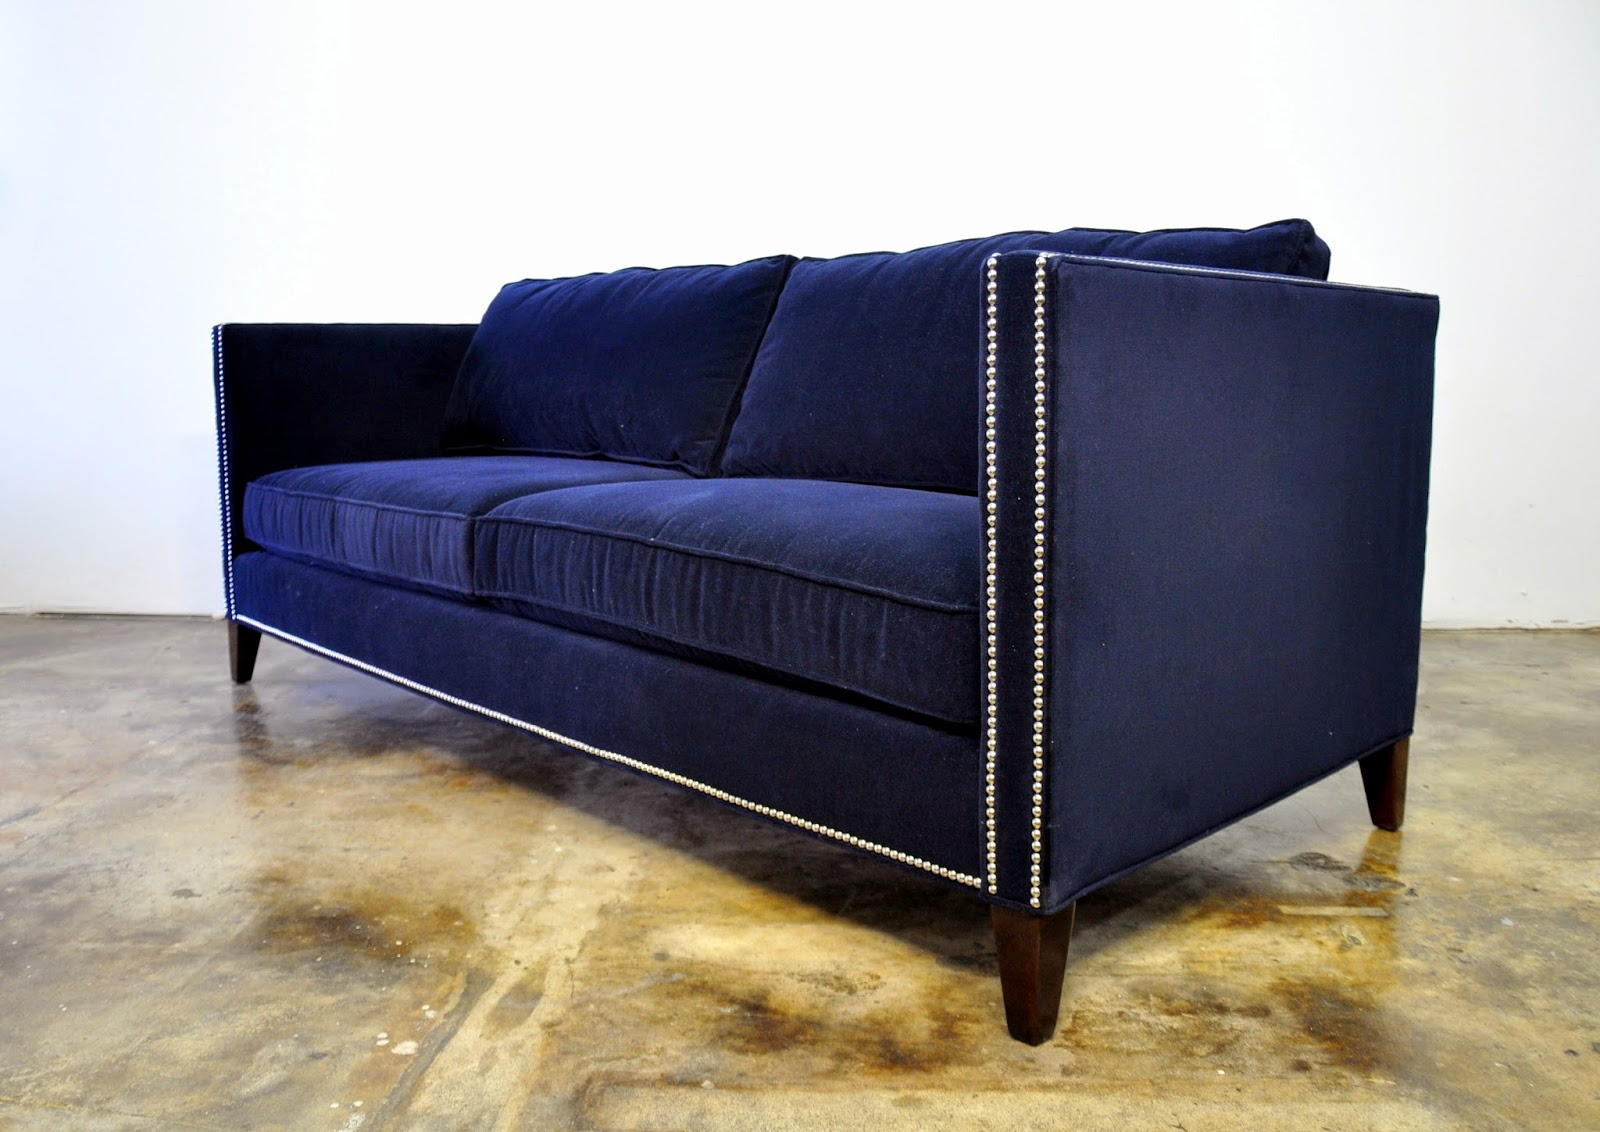 Nail Head Sofa Cheap Sofas On Finance Bad Credit Select Modern: Mitchell Gold + Bob Williams